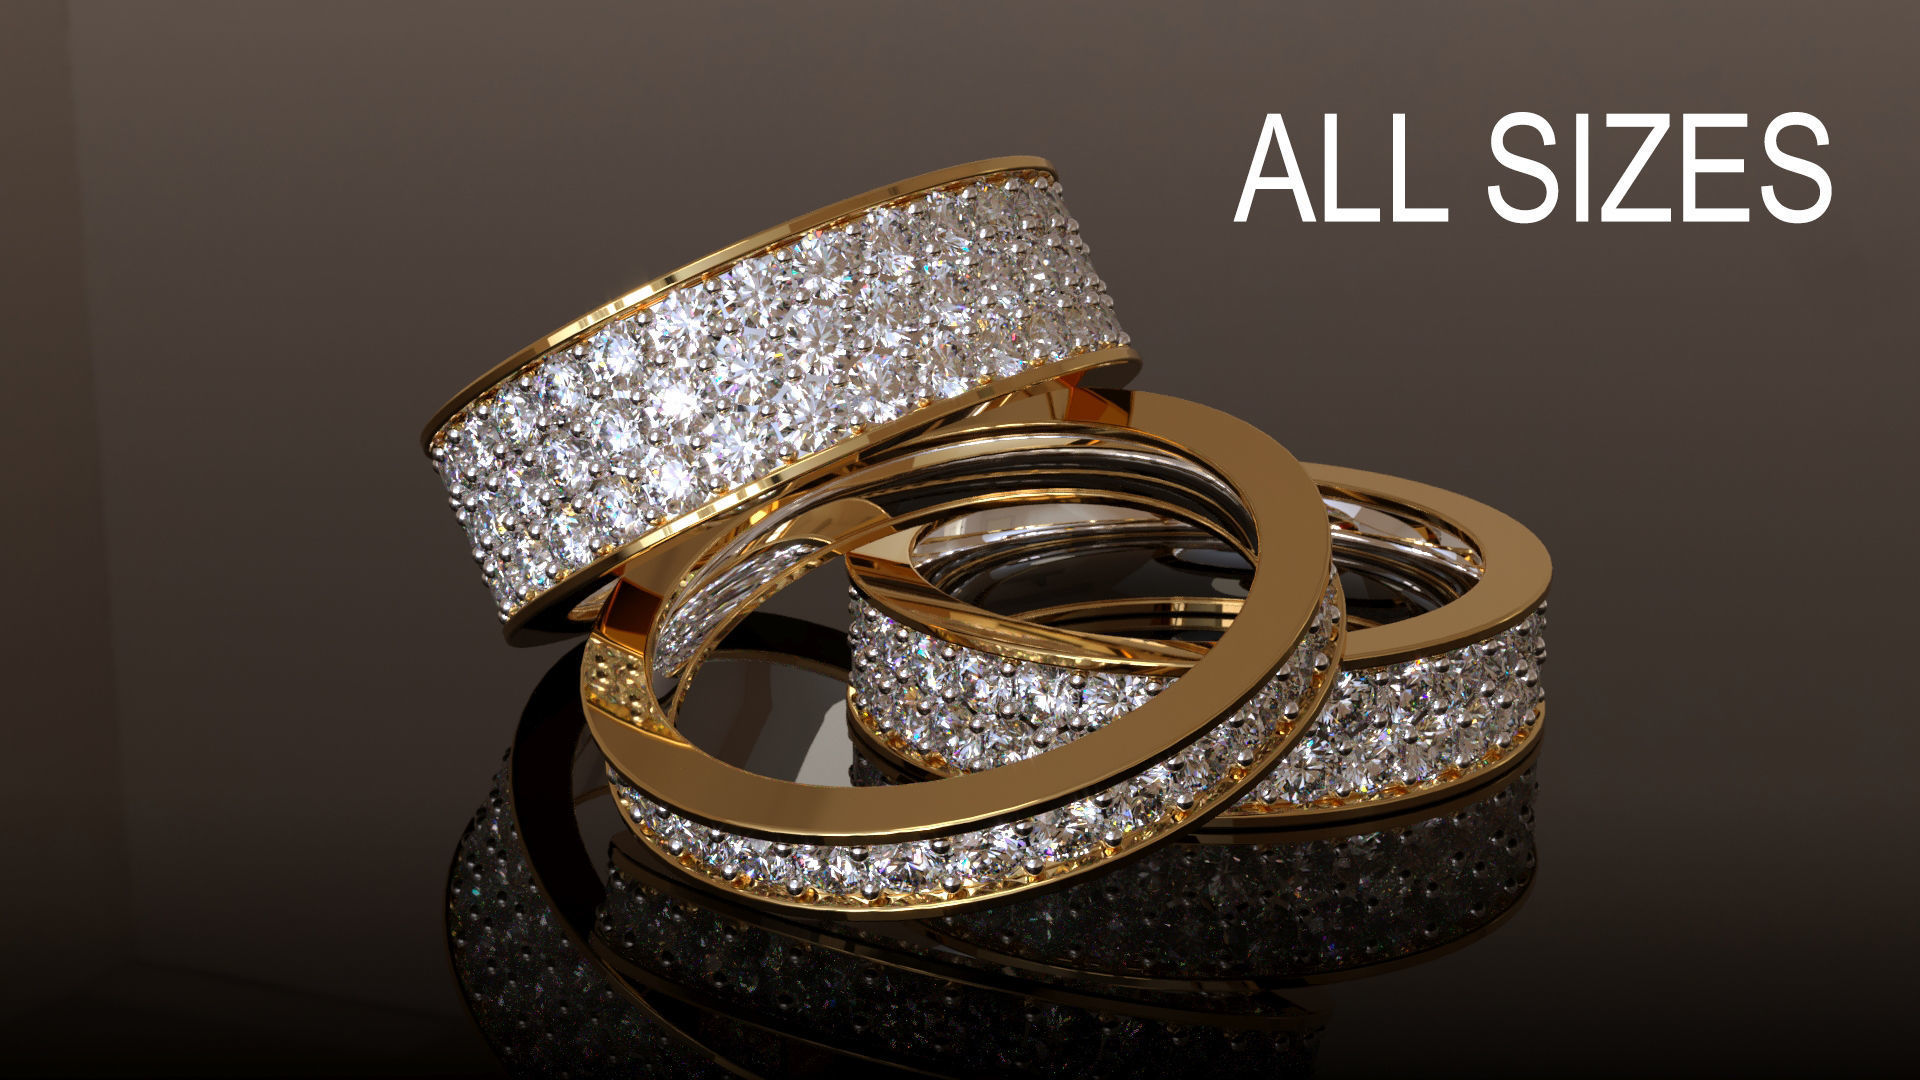 Infinity Ring Collection All sizes